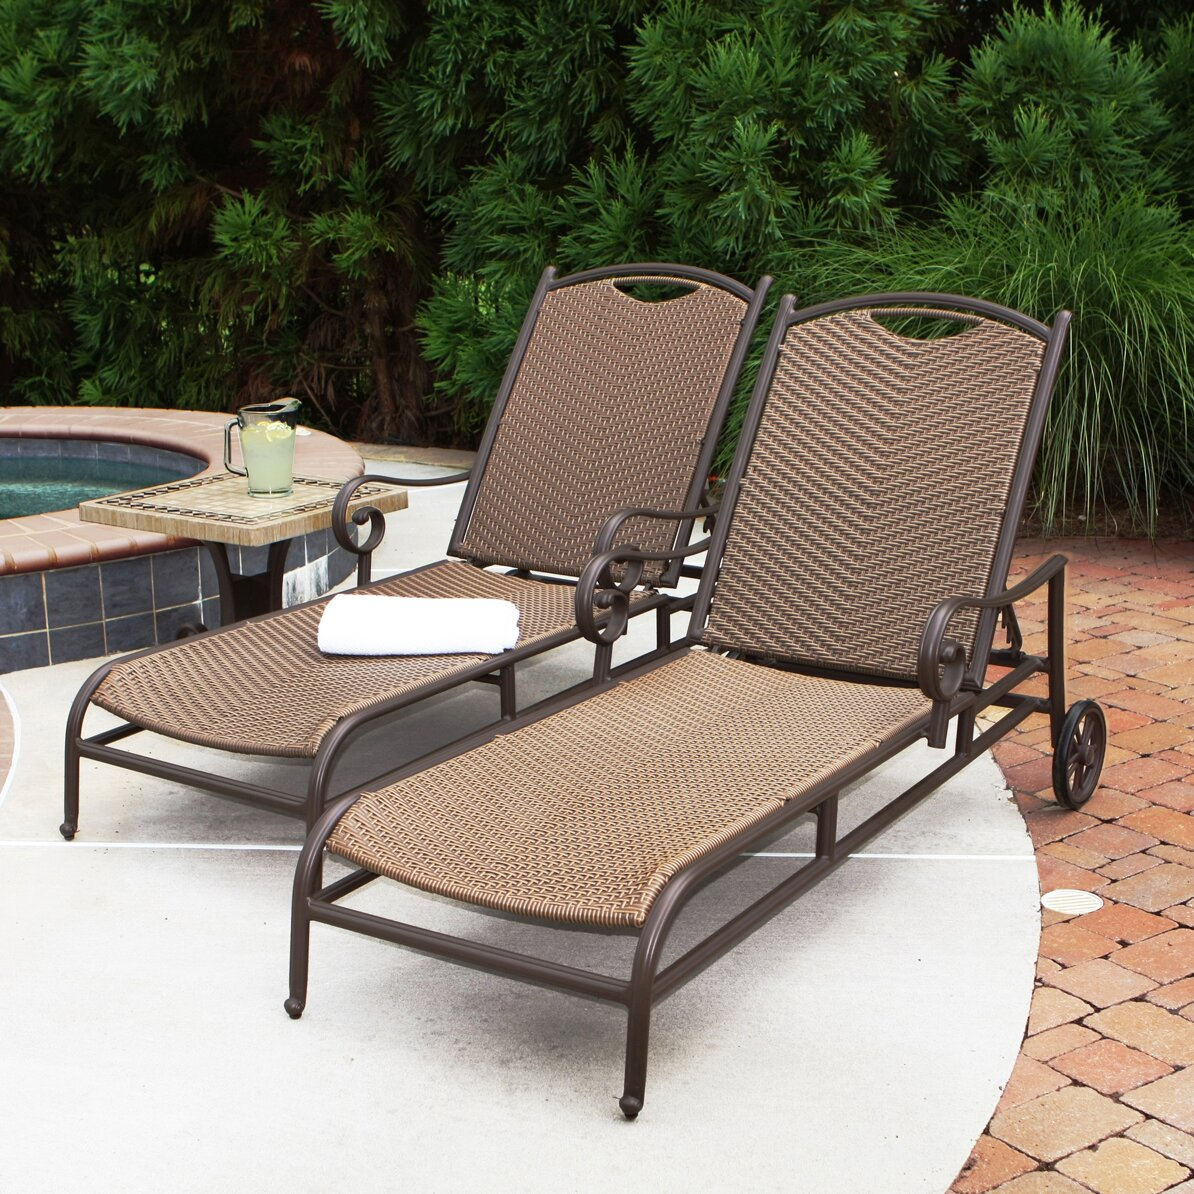 Tortuga outdoor stonewick chaise lounge reviews wayfair for Buy outdoor chaise lounge